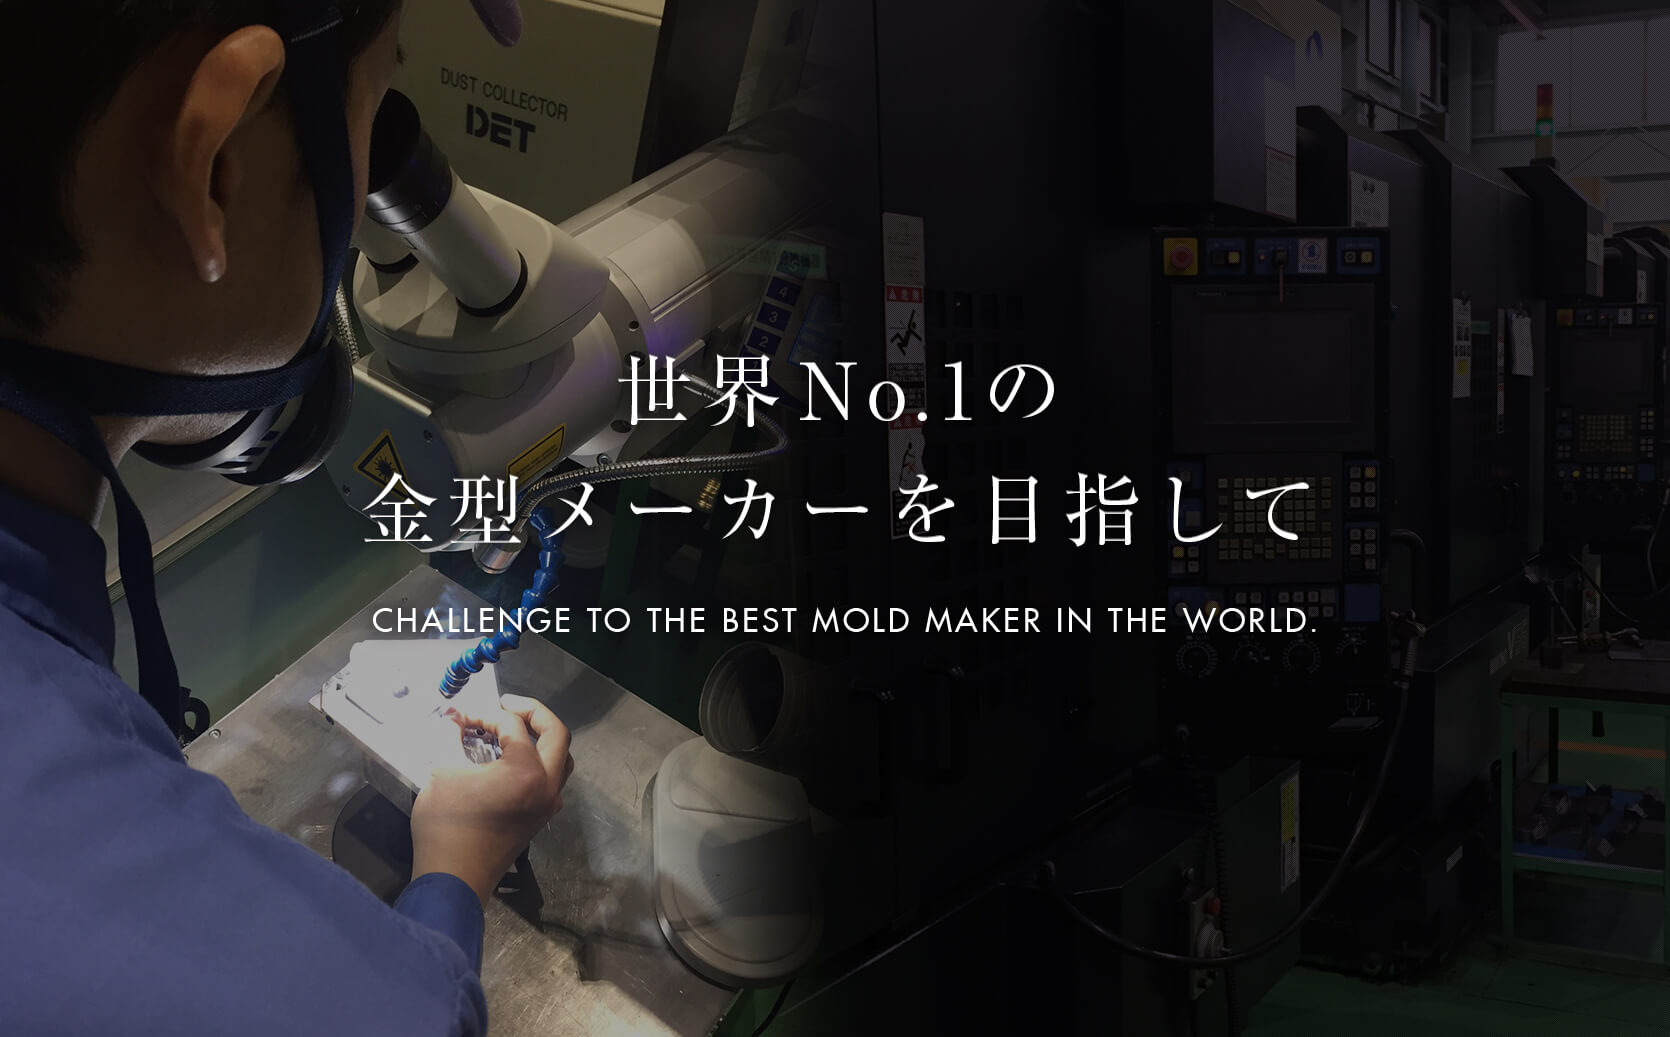 世界No.1の 金型メーカーを目指して|CHALLENGE TO THE BEST MOLD MAKER IN THE WORLD.